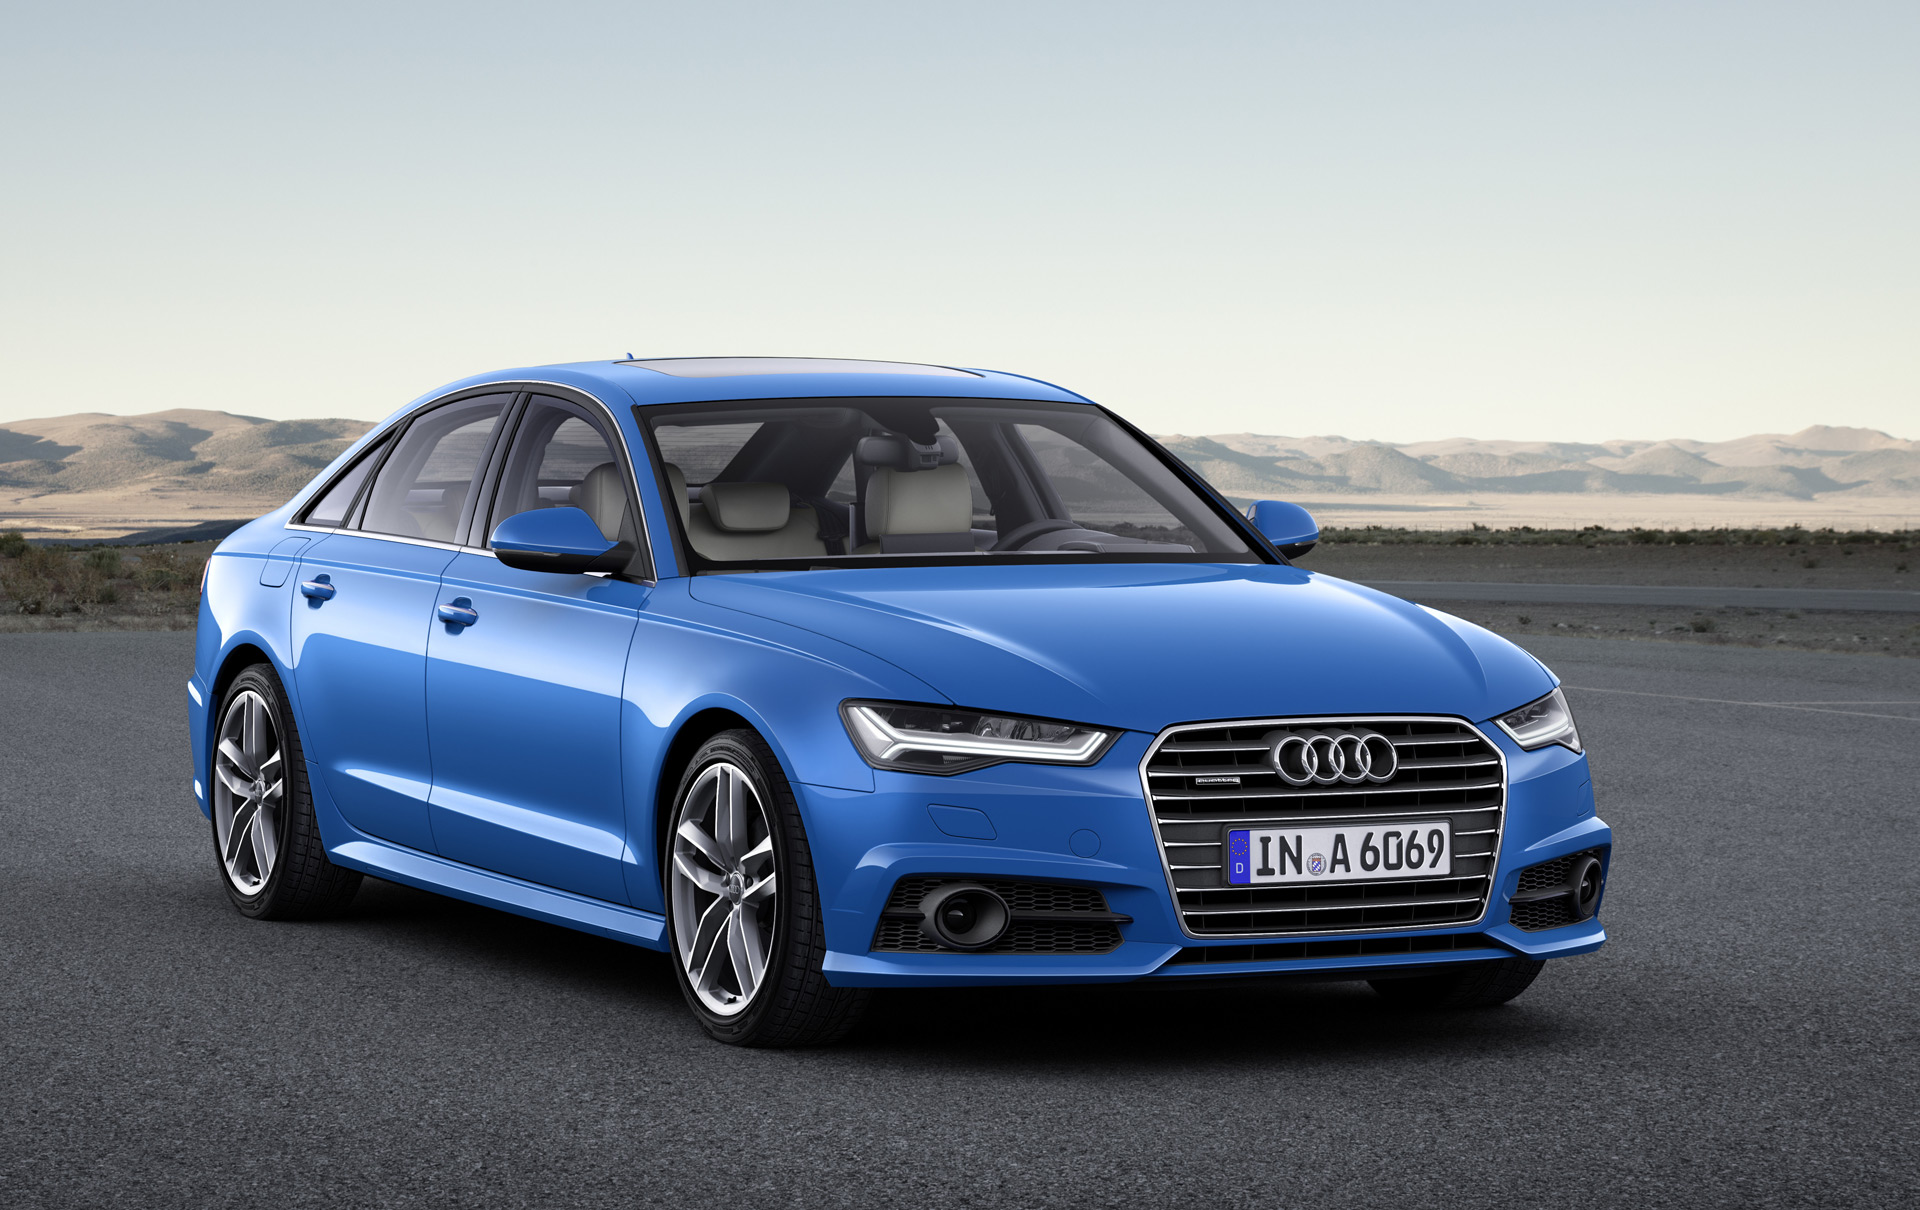 2017 Audi A6 Review, Ratings, Specs, Prices, And Photos